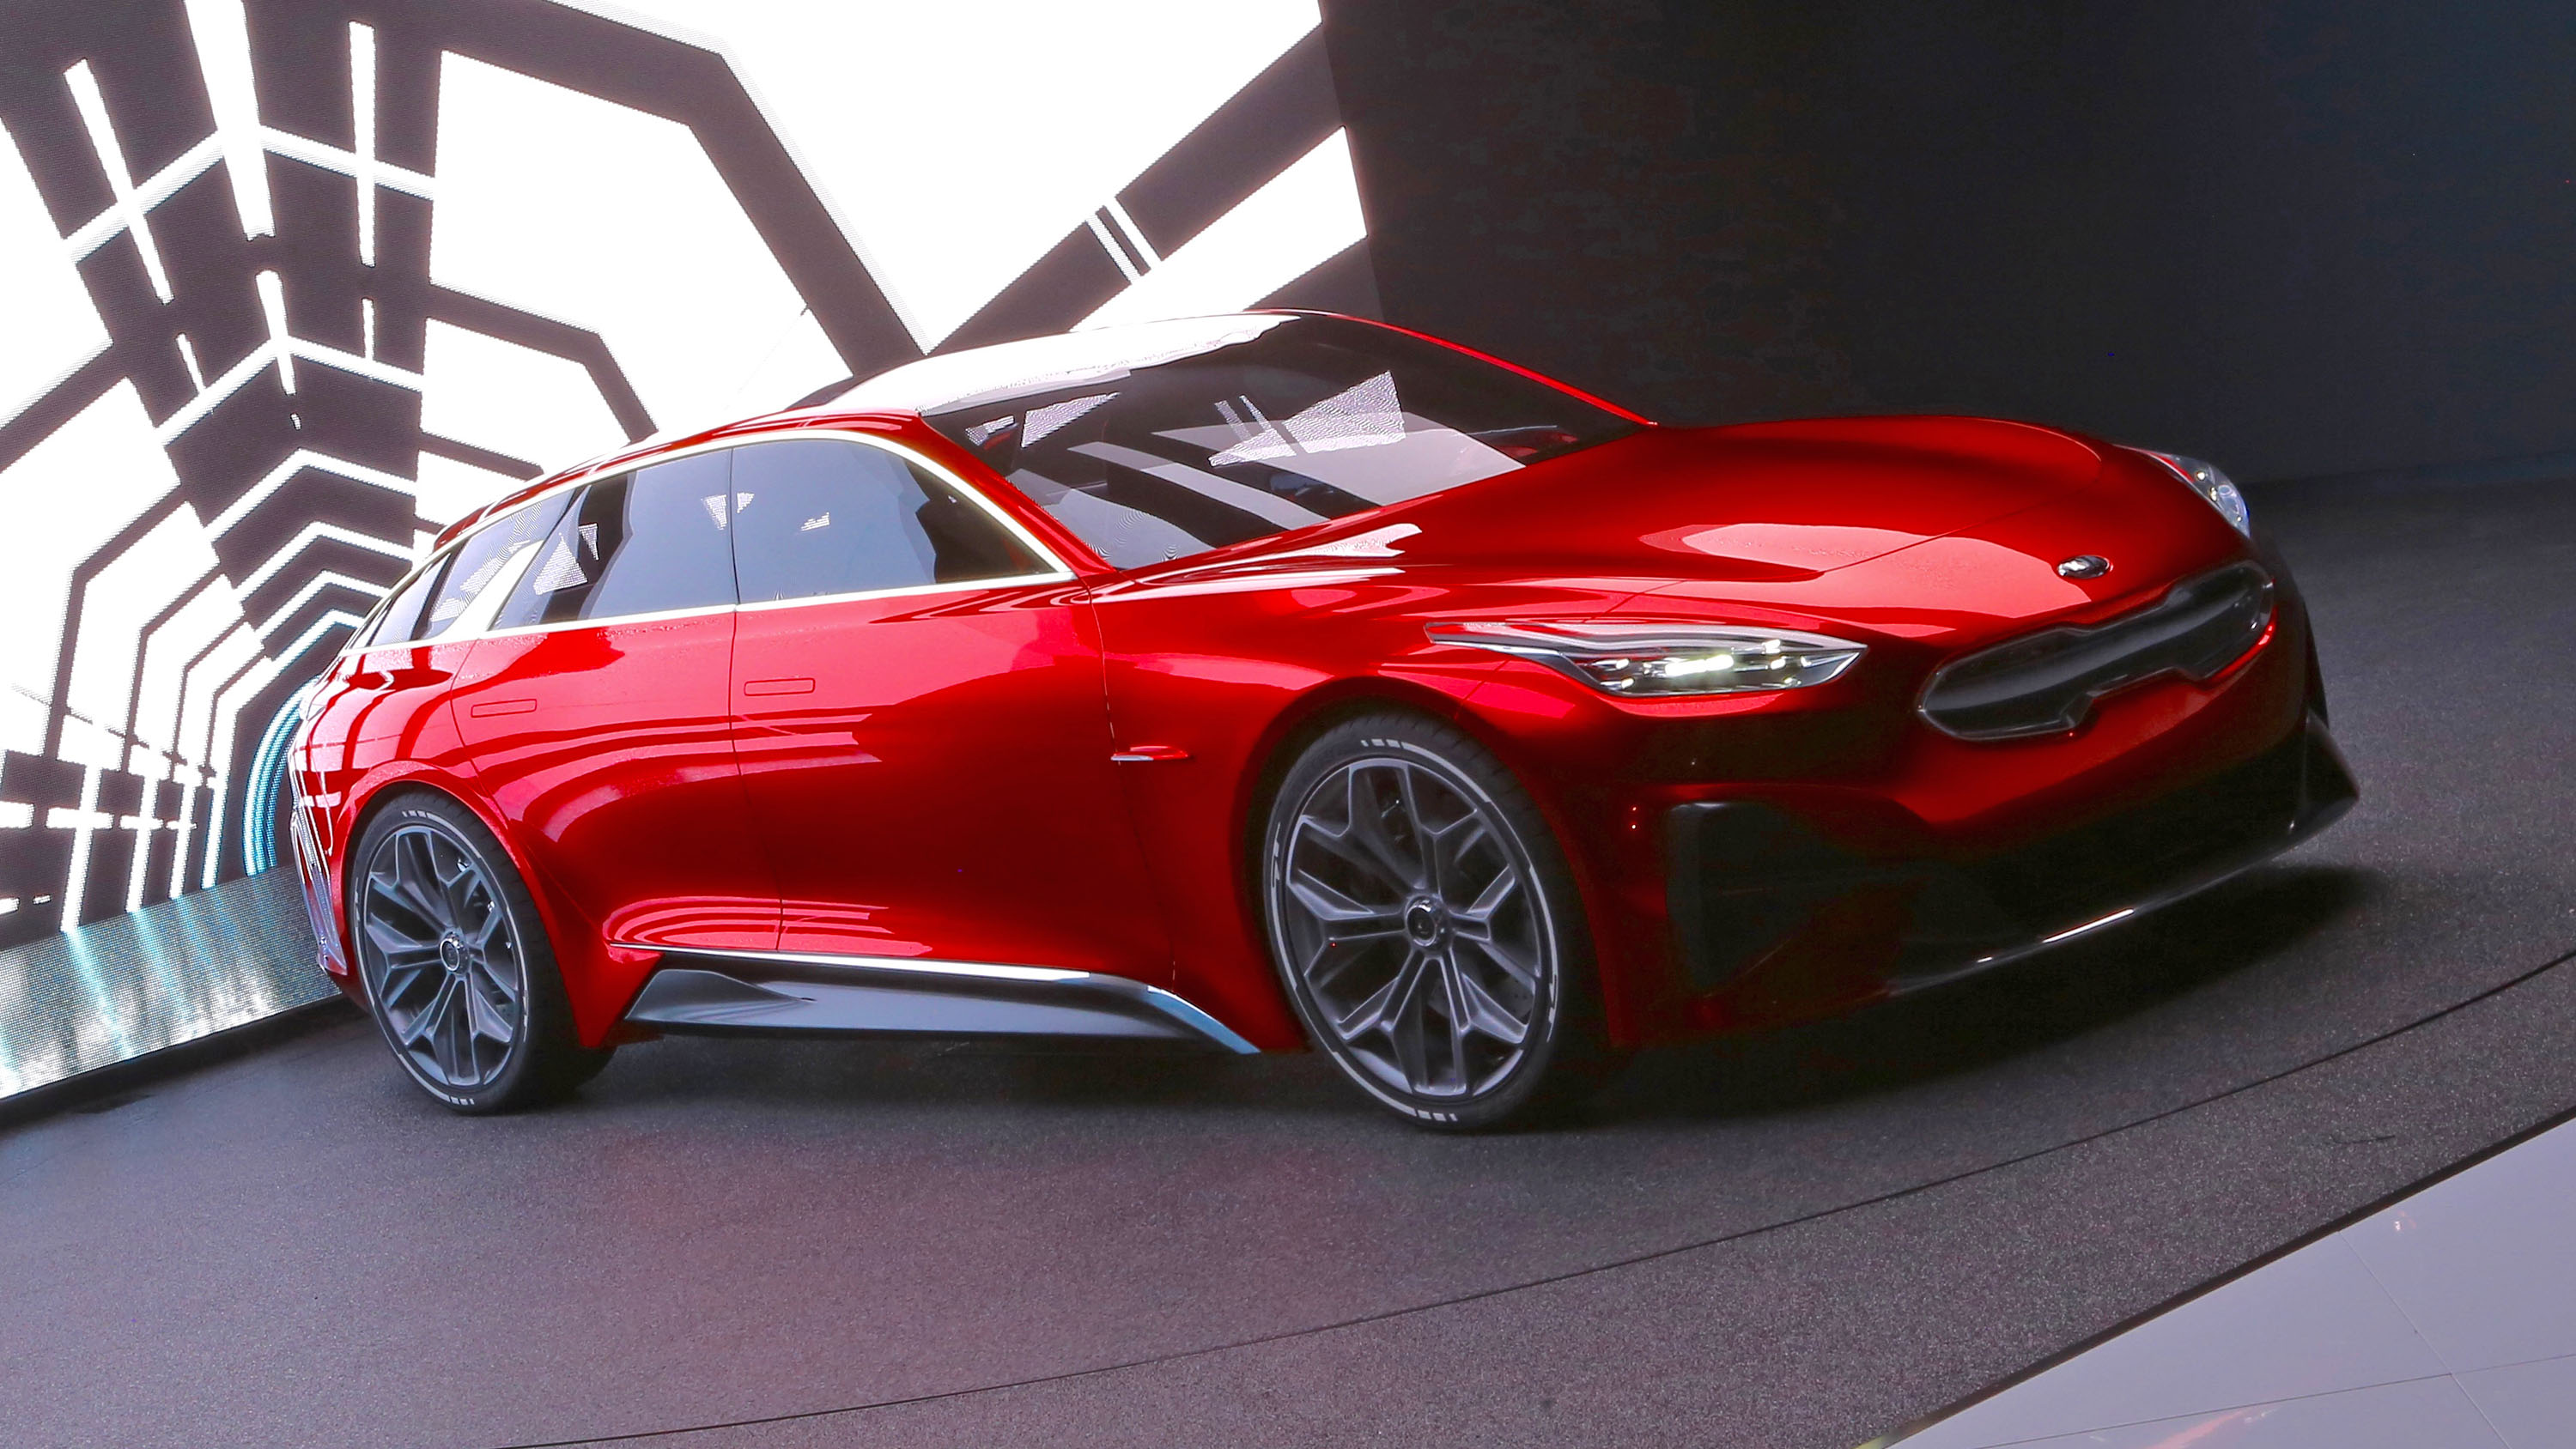 kia reveals stunning shooting brake concept top gear. Black Bedroom Furniture Sets. Home Design Ideas